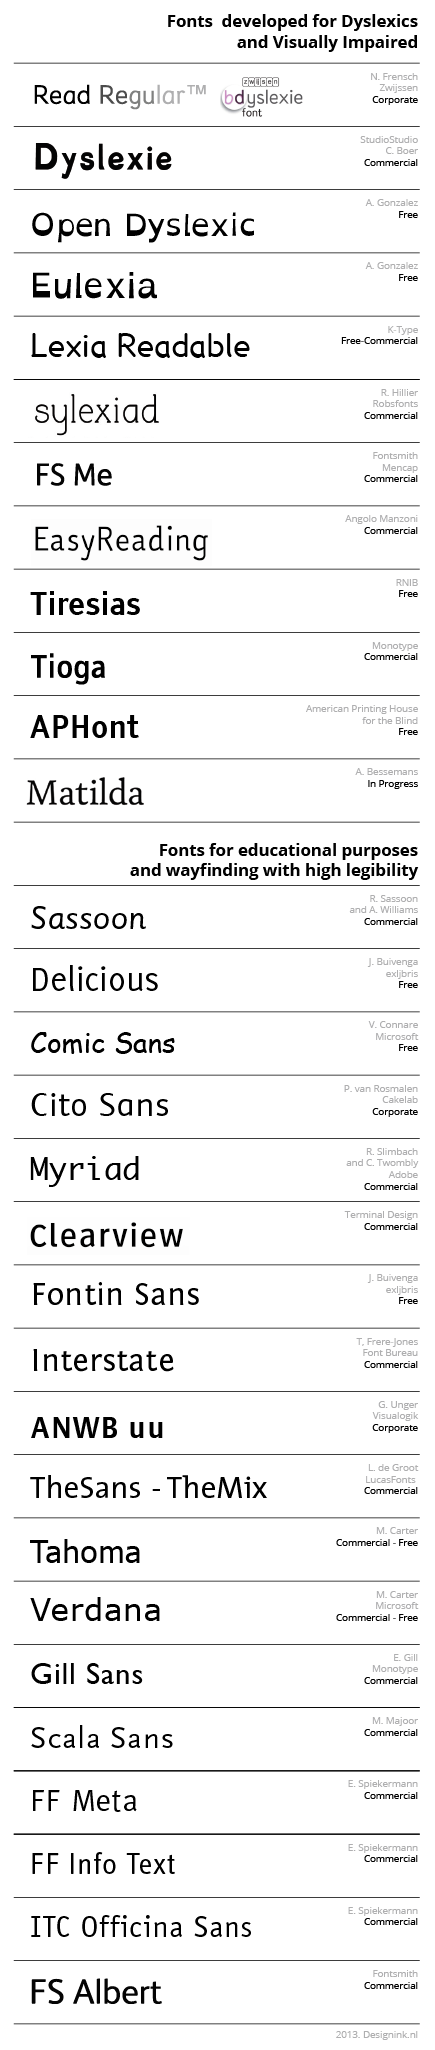 Fonts Dyslexia overview